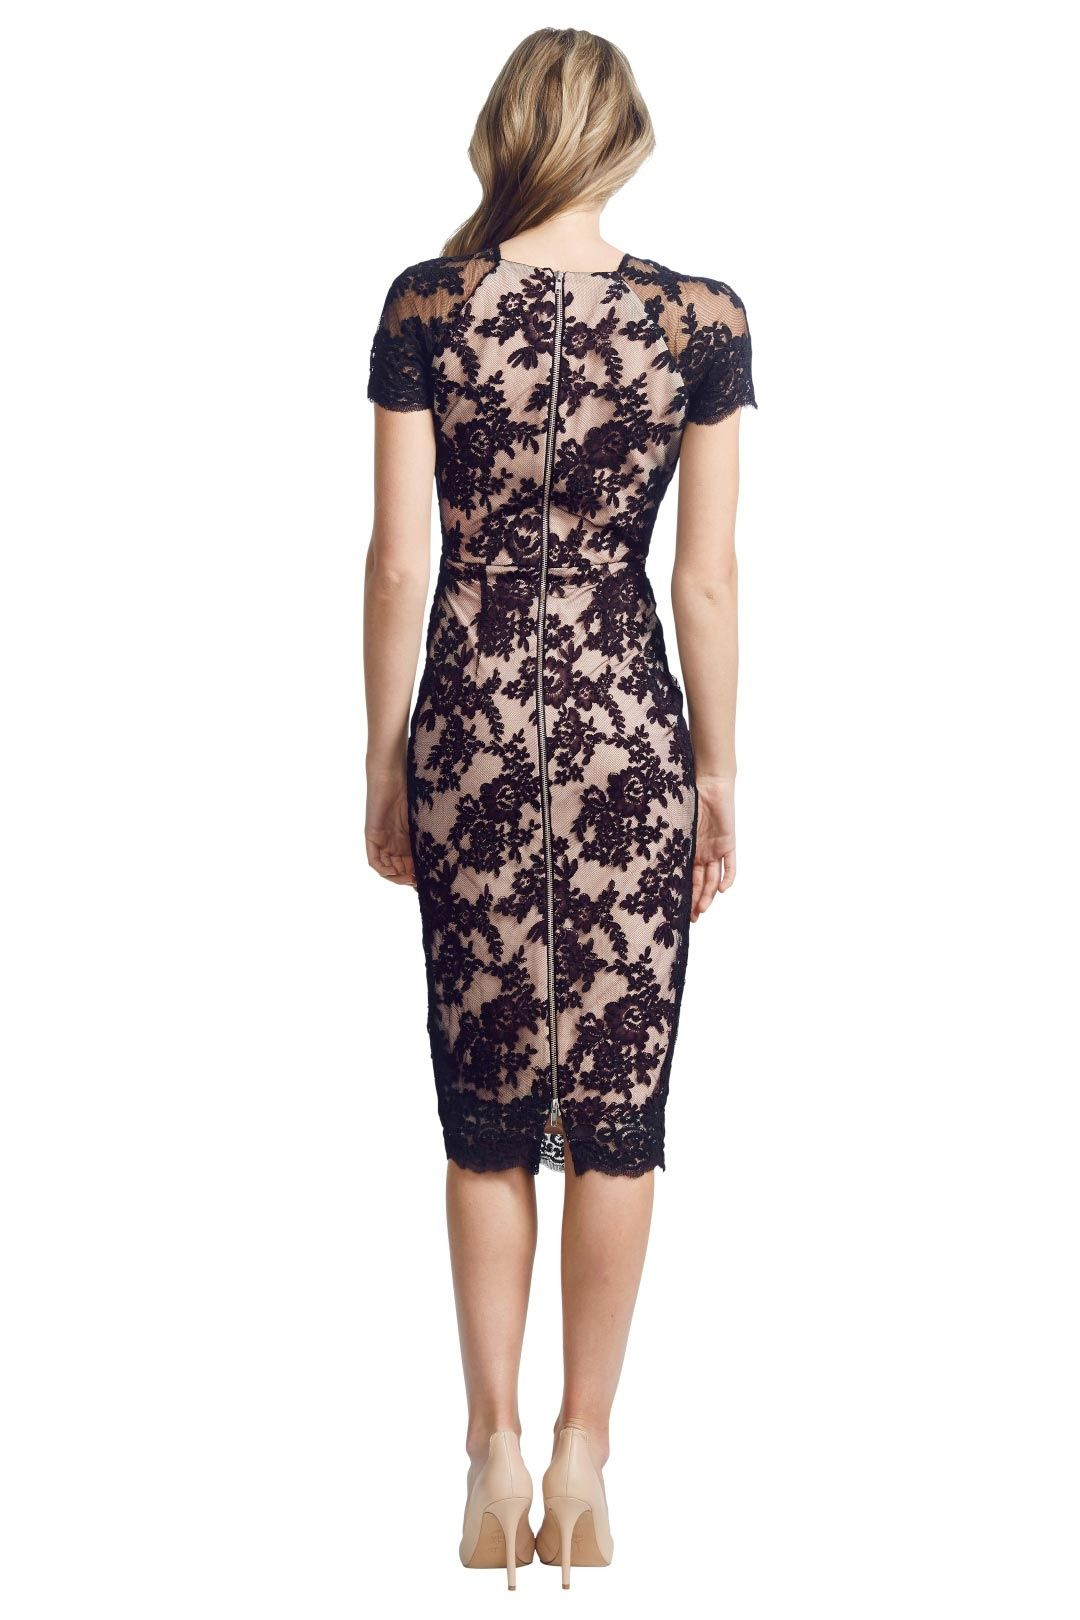 Alex Perry - Francoise Dress - Black - Back